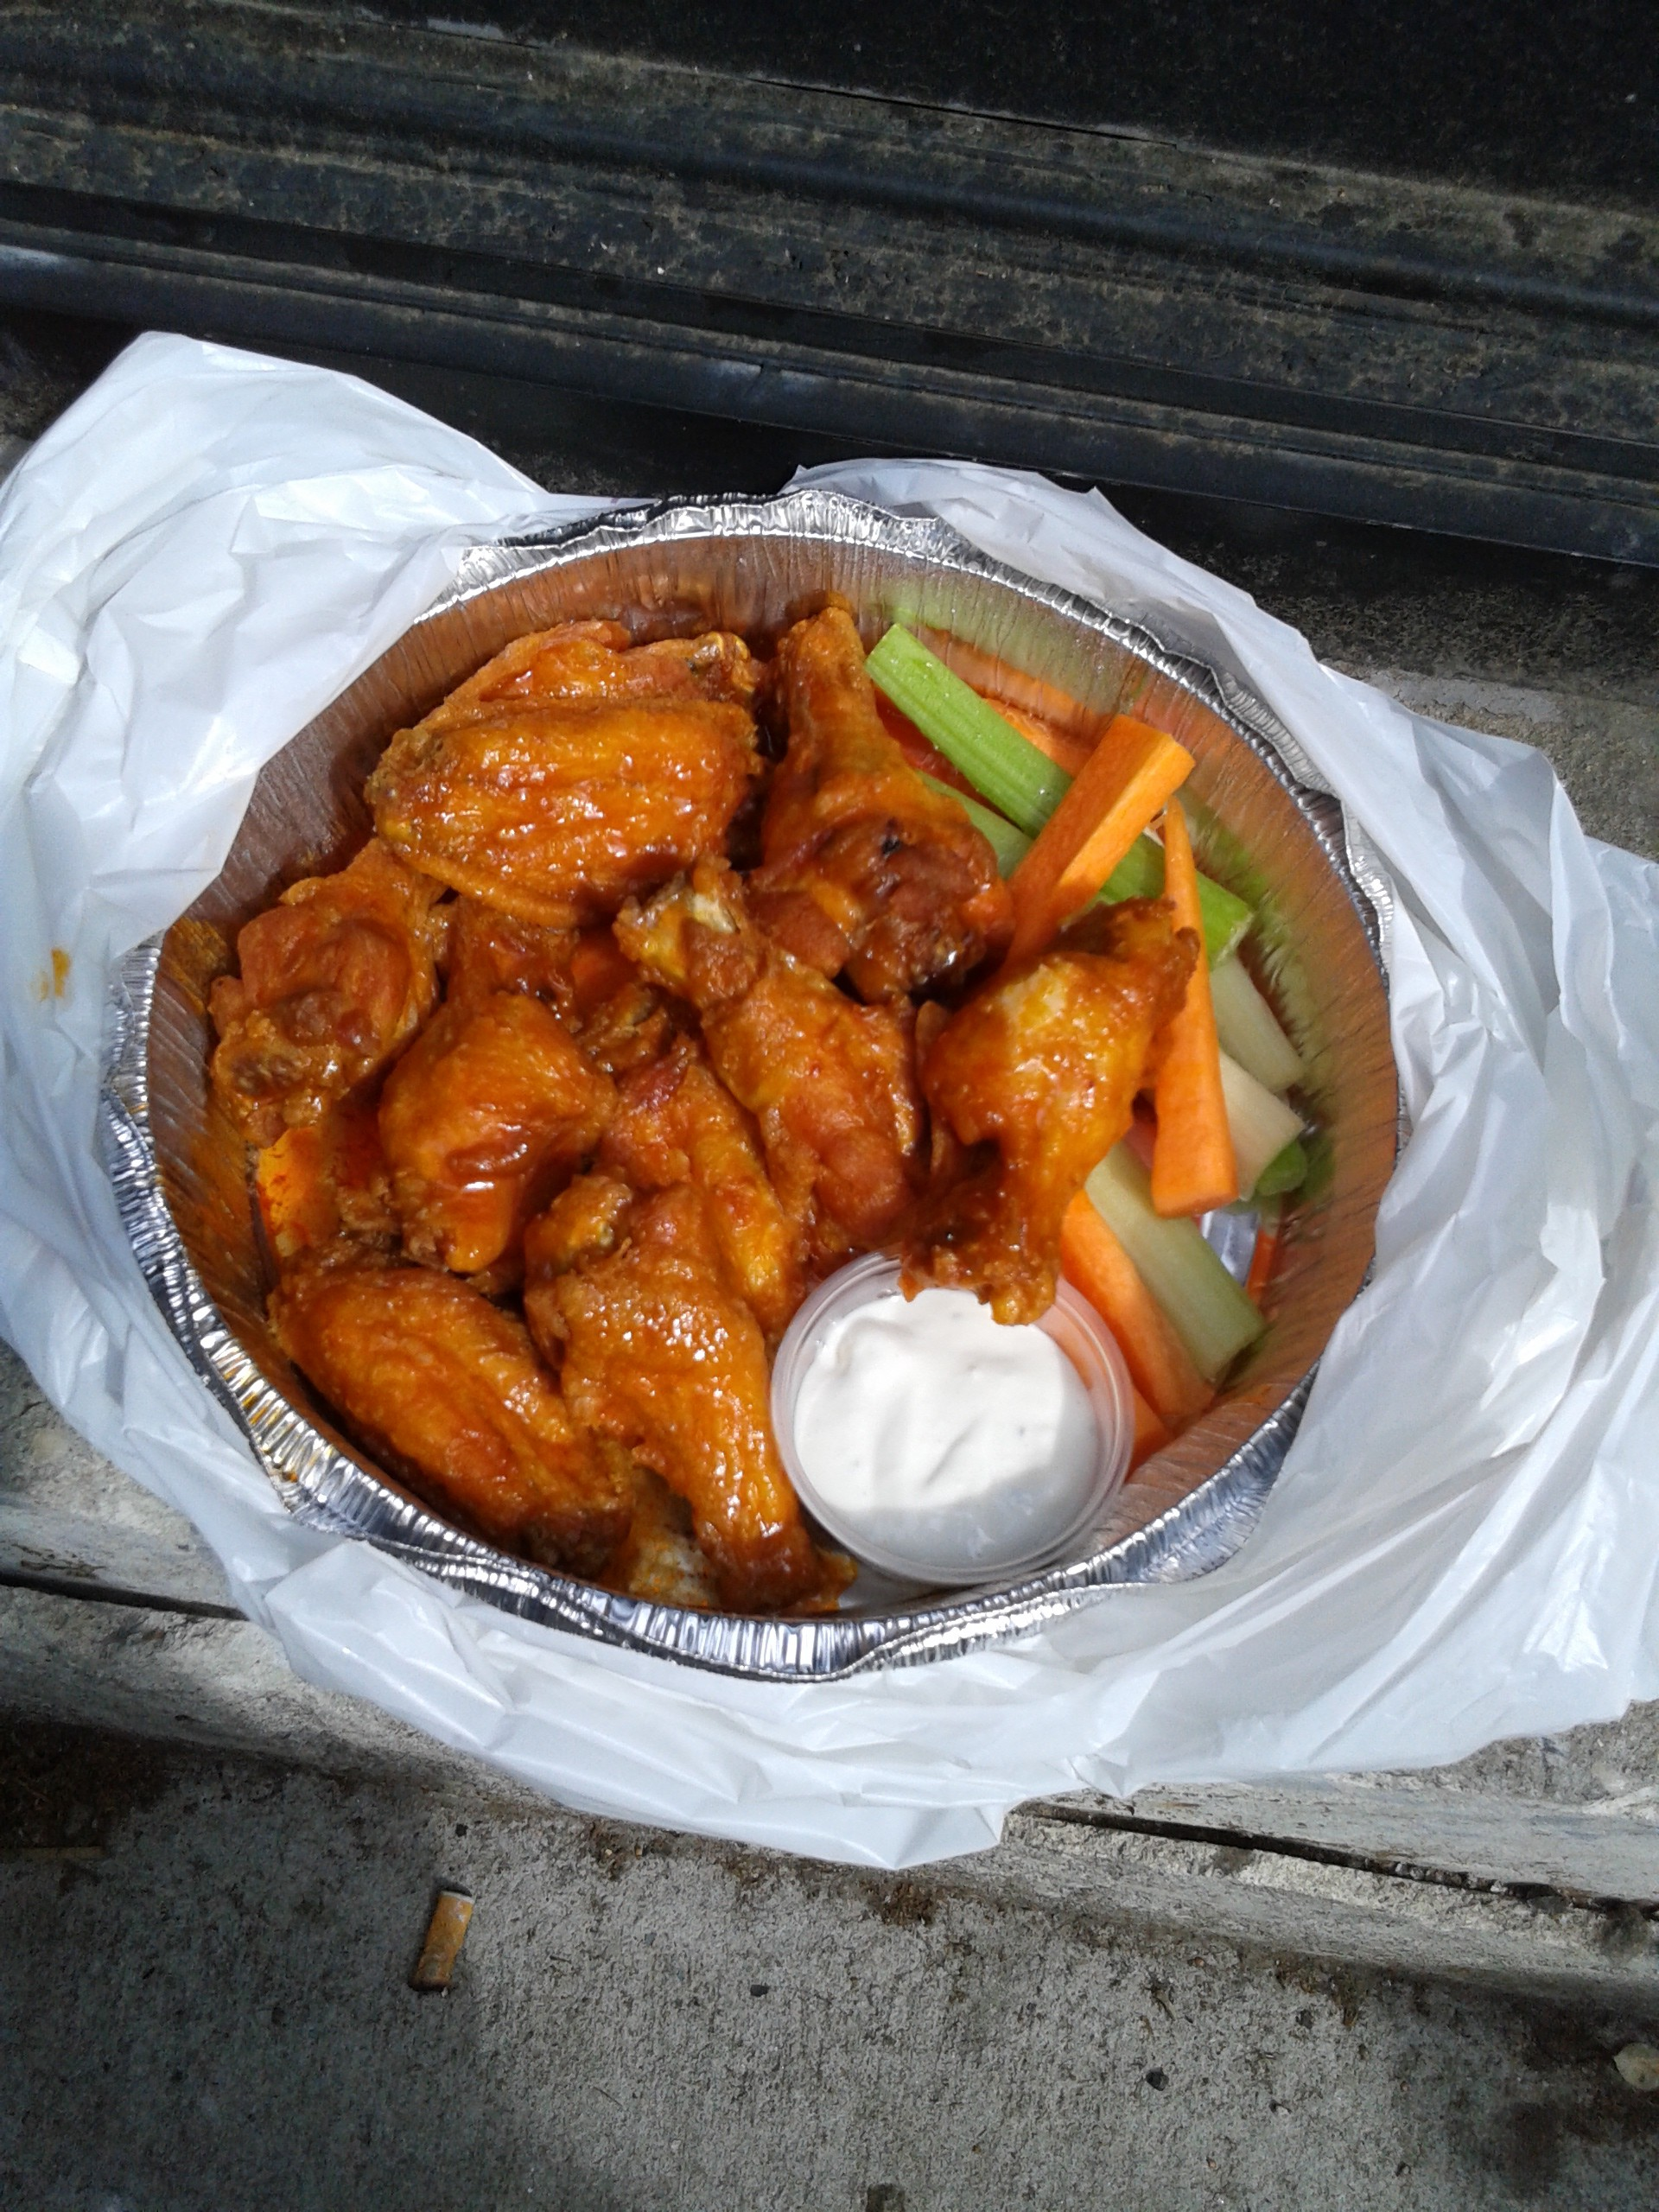 Good ole' Buffalo Wings!